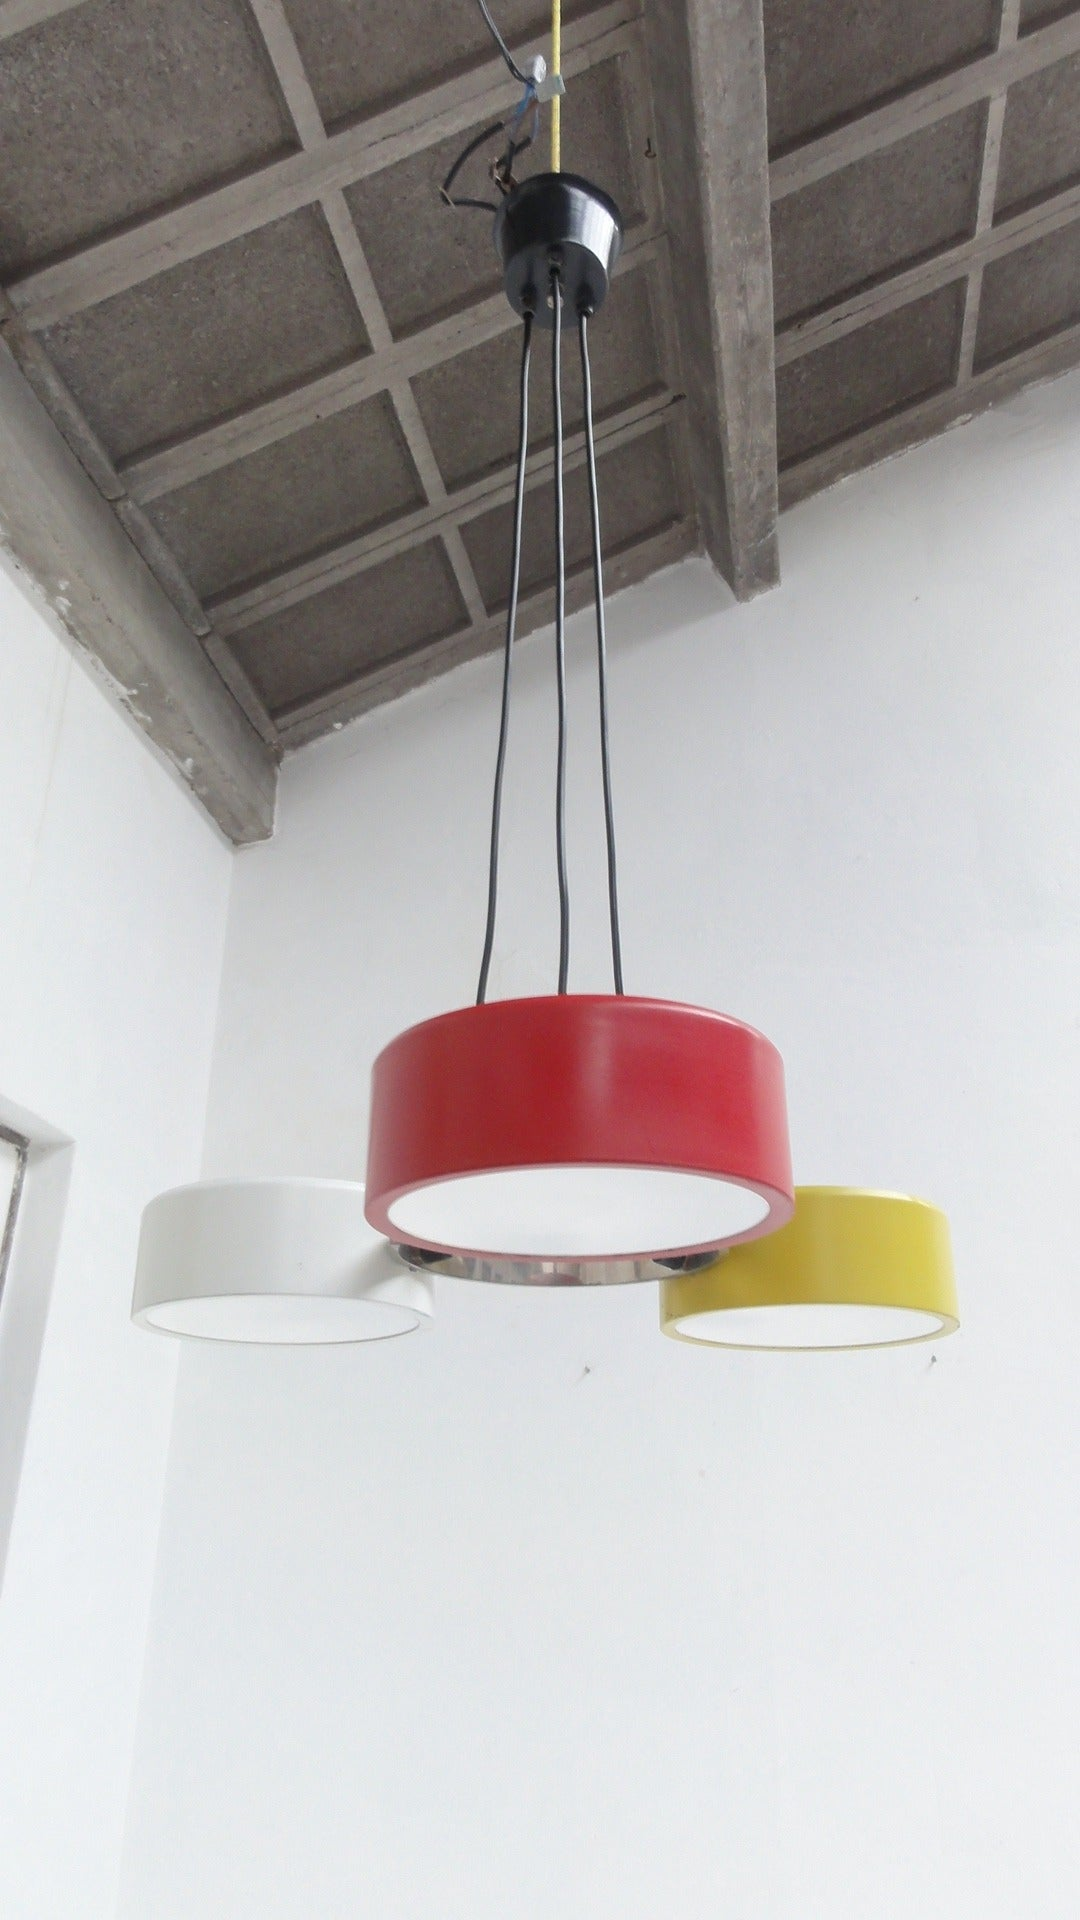 Stunning Three Colored Pendant by Bruno Gatta for Stilnovo, Italy 1950s For Sale 2